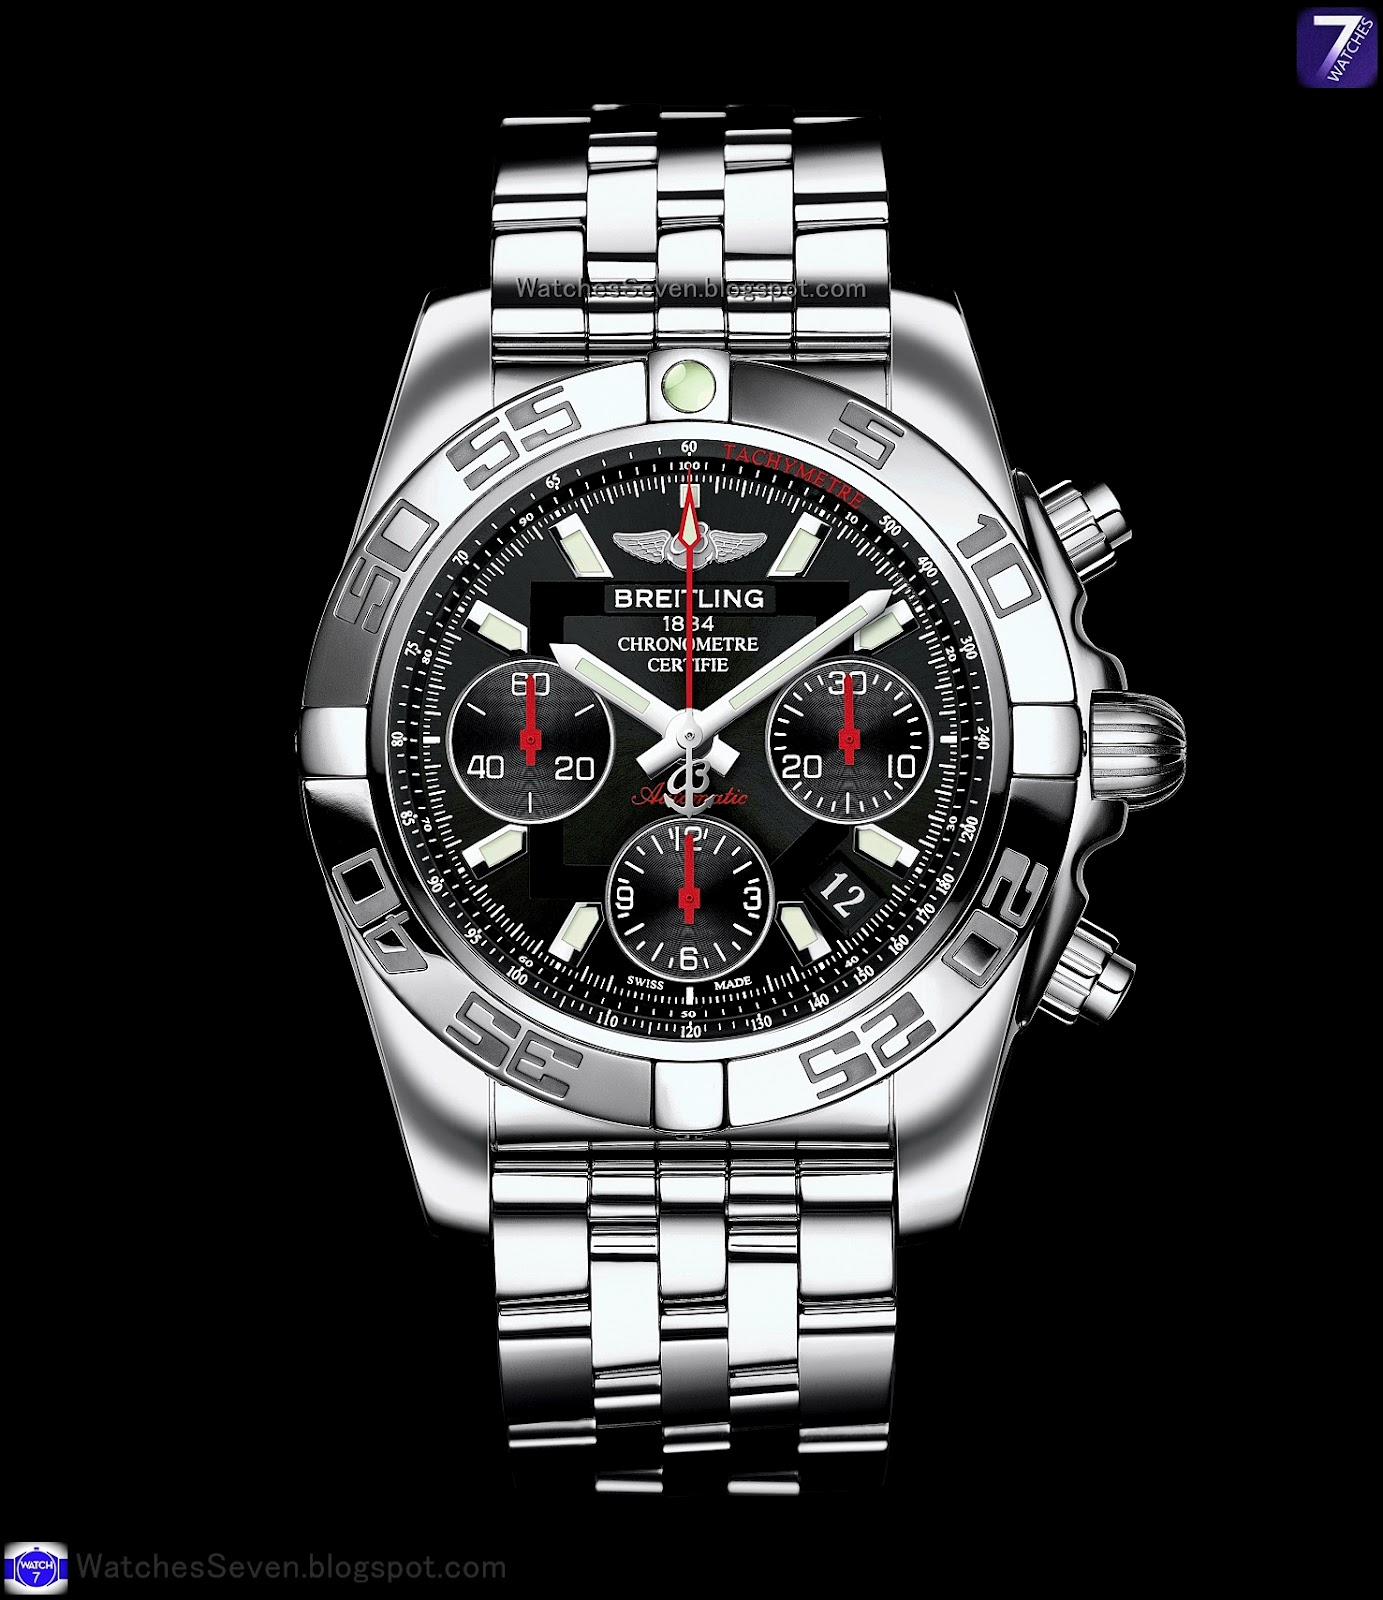 watches 7 breitling chronomat 41 chronograph limited. Black Bedroom Furniture Sets. Home Design Ideas